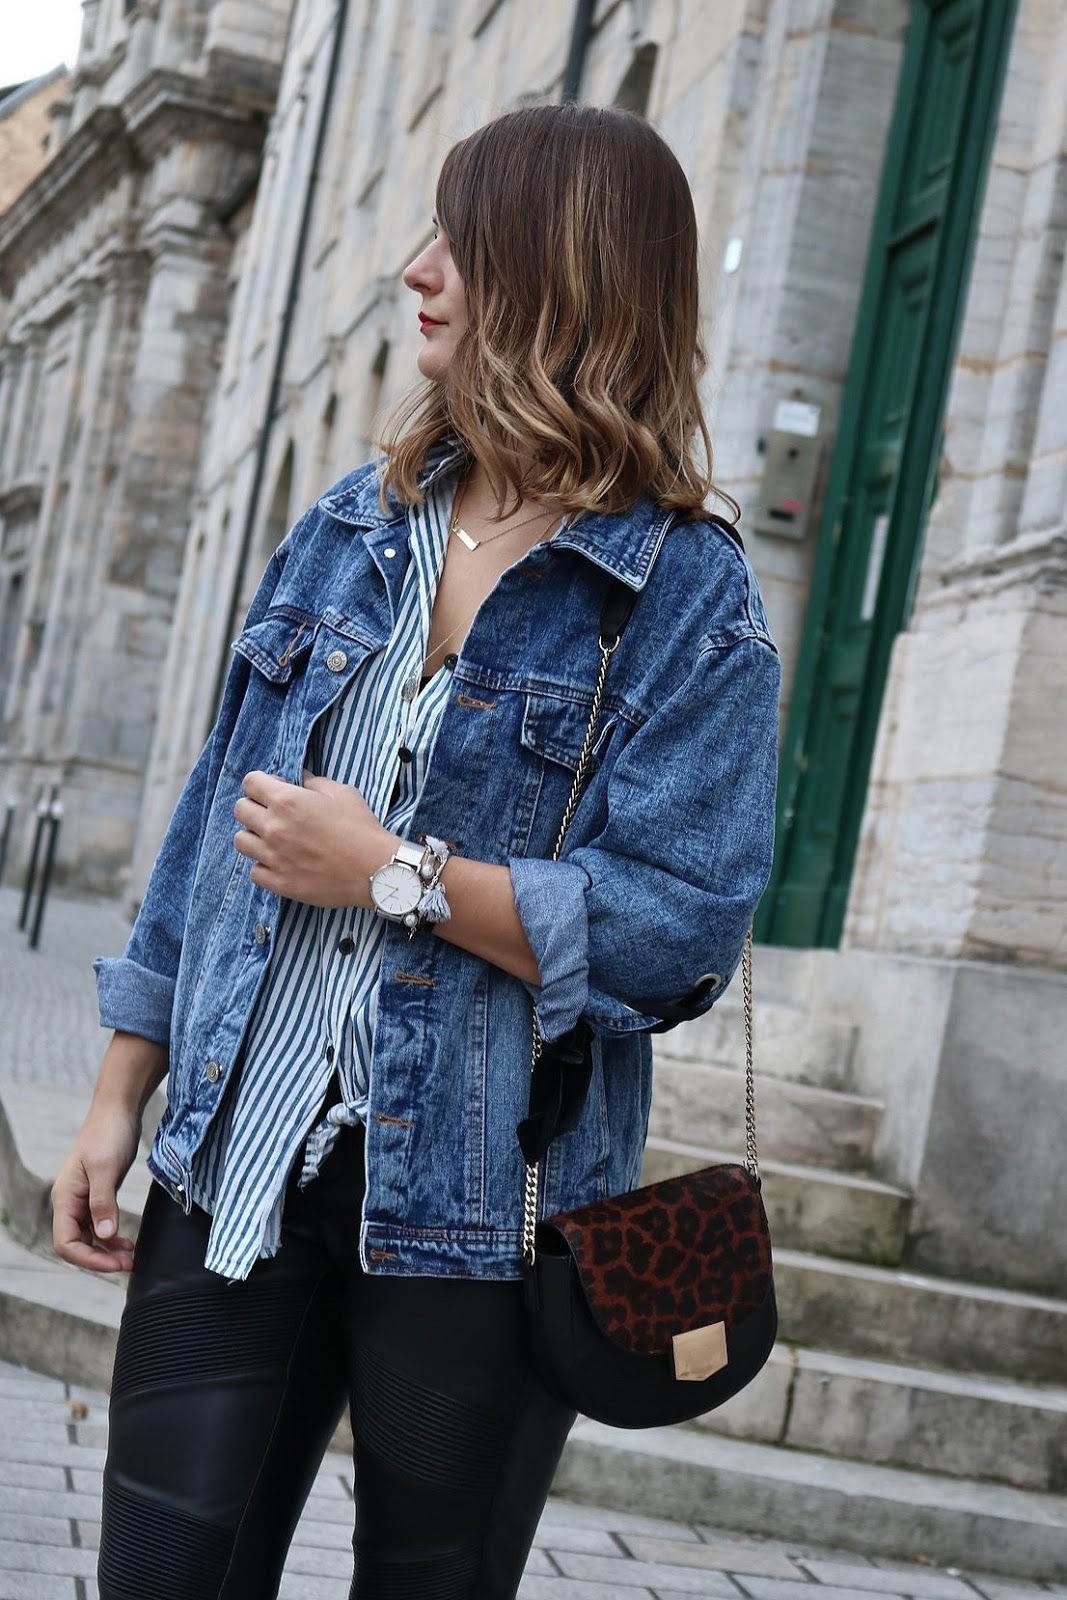 pauline-dress-tenue-look-besancon-veste-denim-lace-up-noir-tregging-chemise-rayee-sac-leo-zoom-last